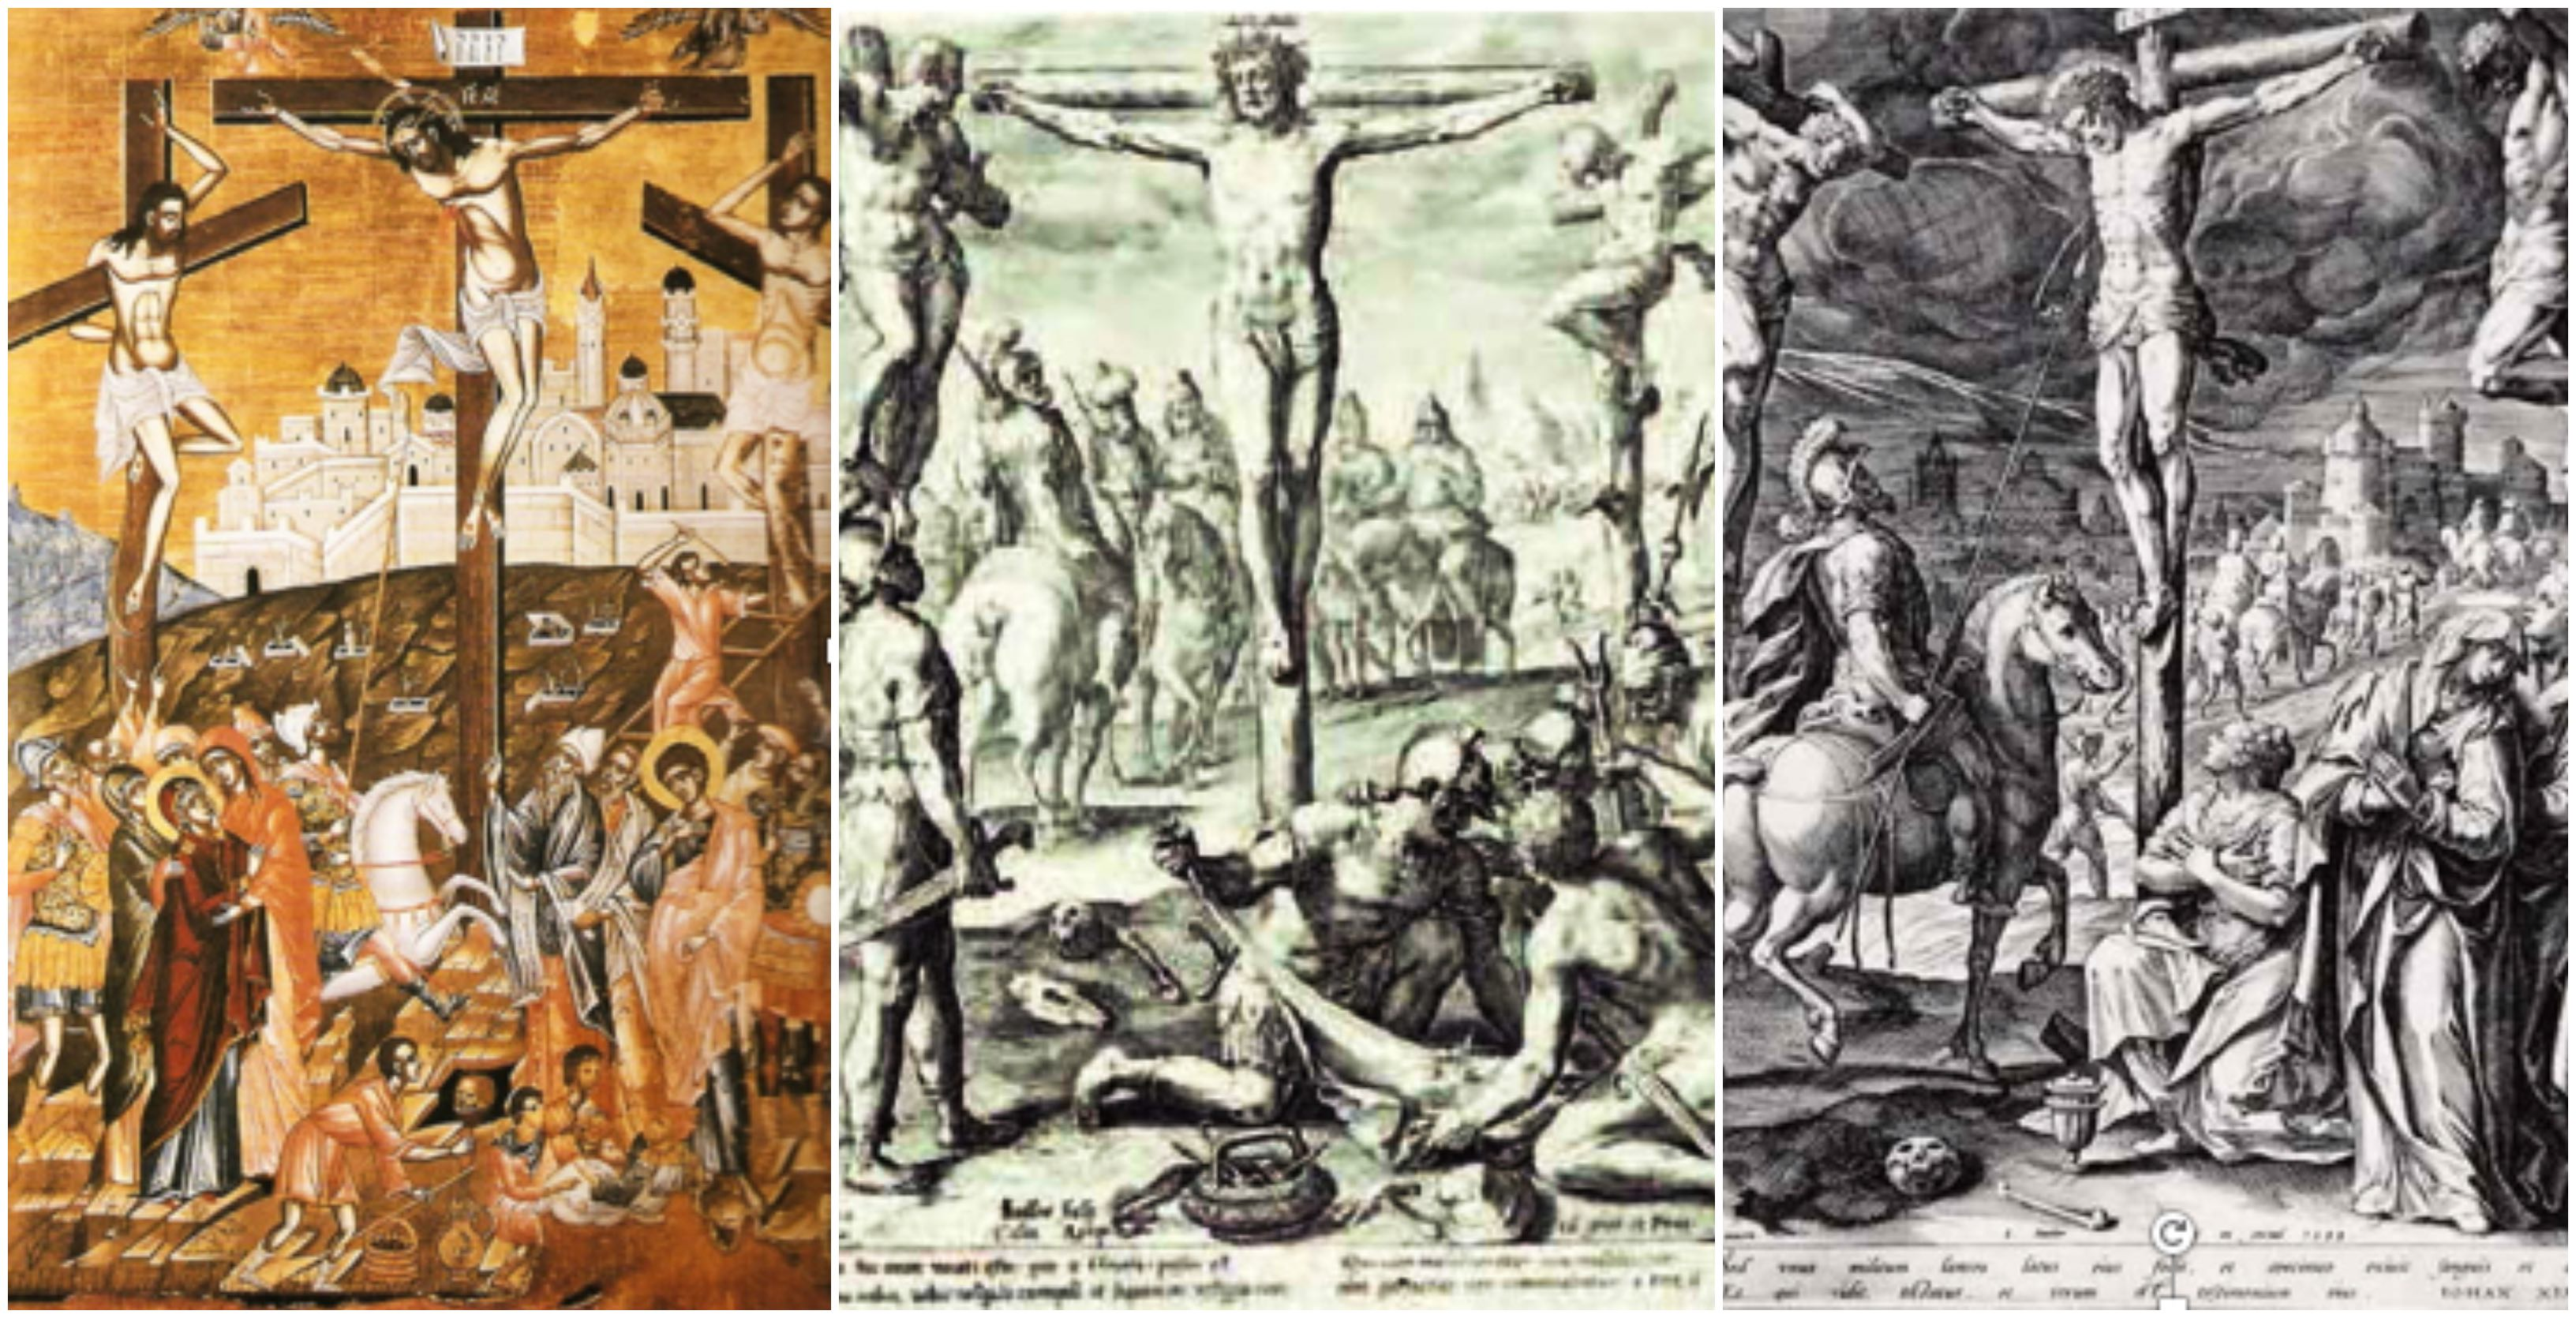 Collage 1 crucifixion